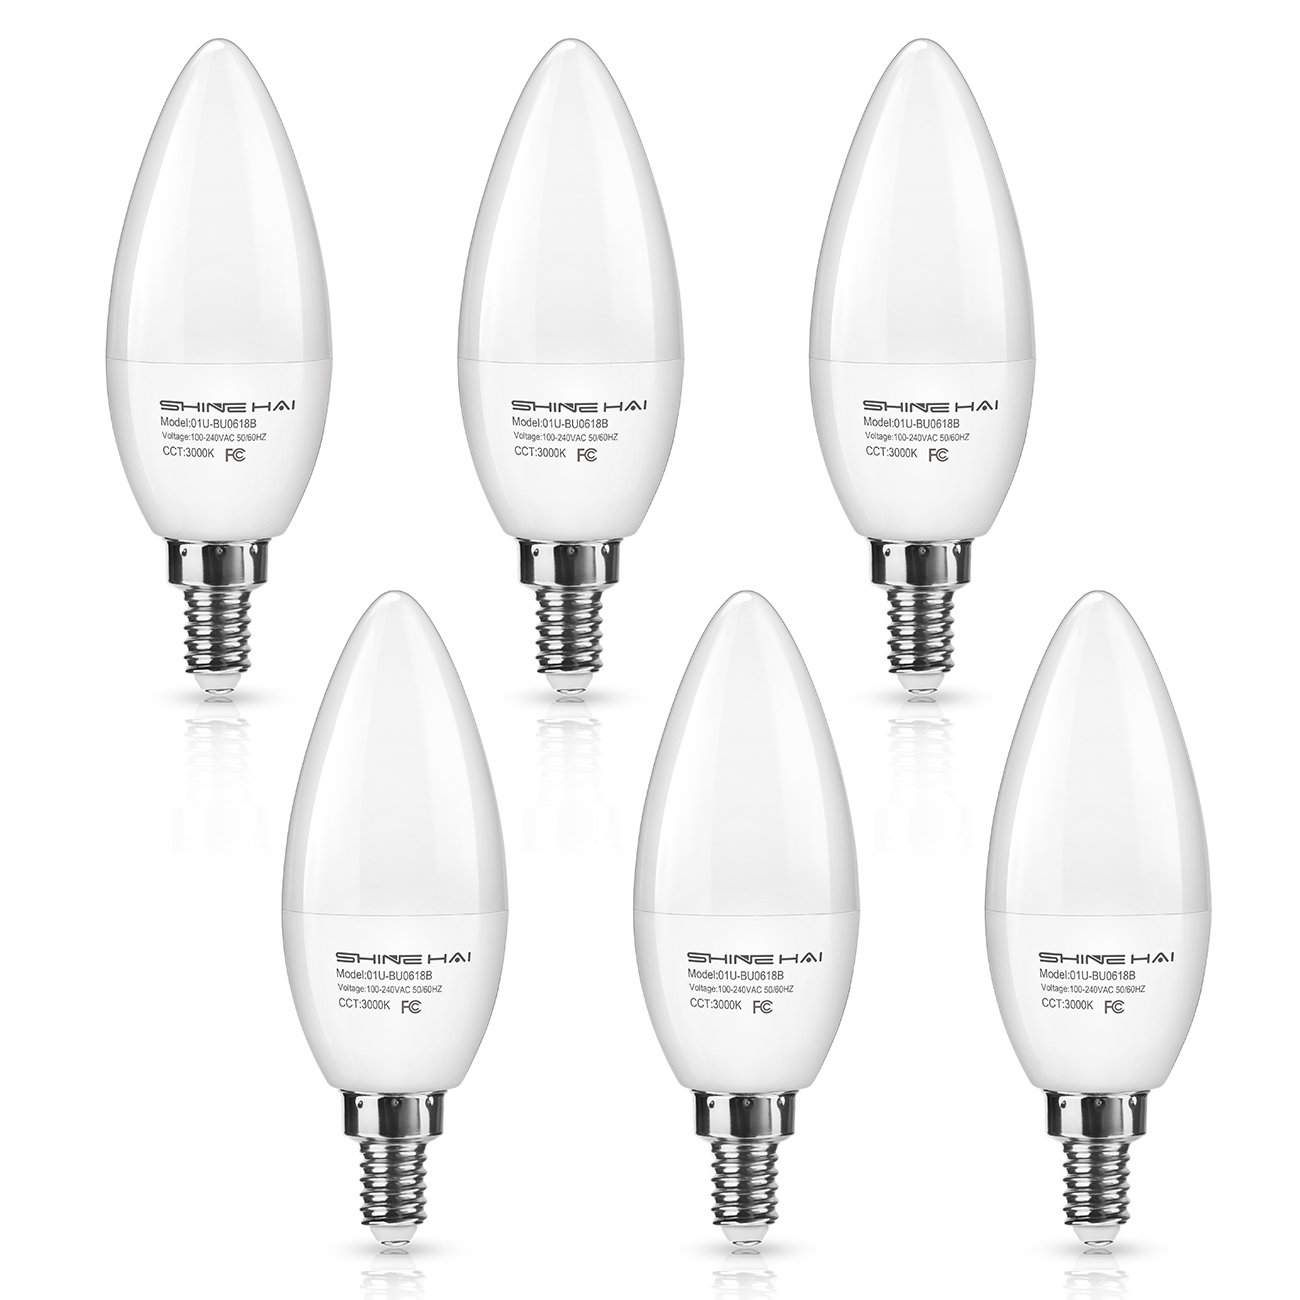 SHINE HAI Candelabra LED Bulbs 50W Equivalent, 500 Lumens 3000K Warm White Decorative Candle Light Bulb E12 Base, Chandelier B11 LED Light Bulbs, Pack of 6